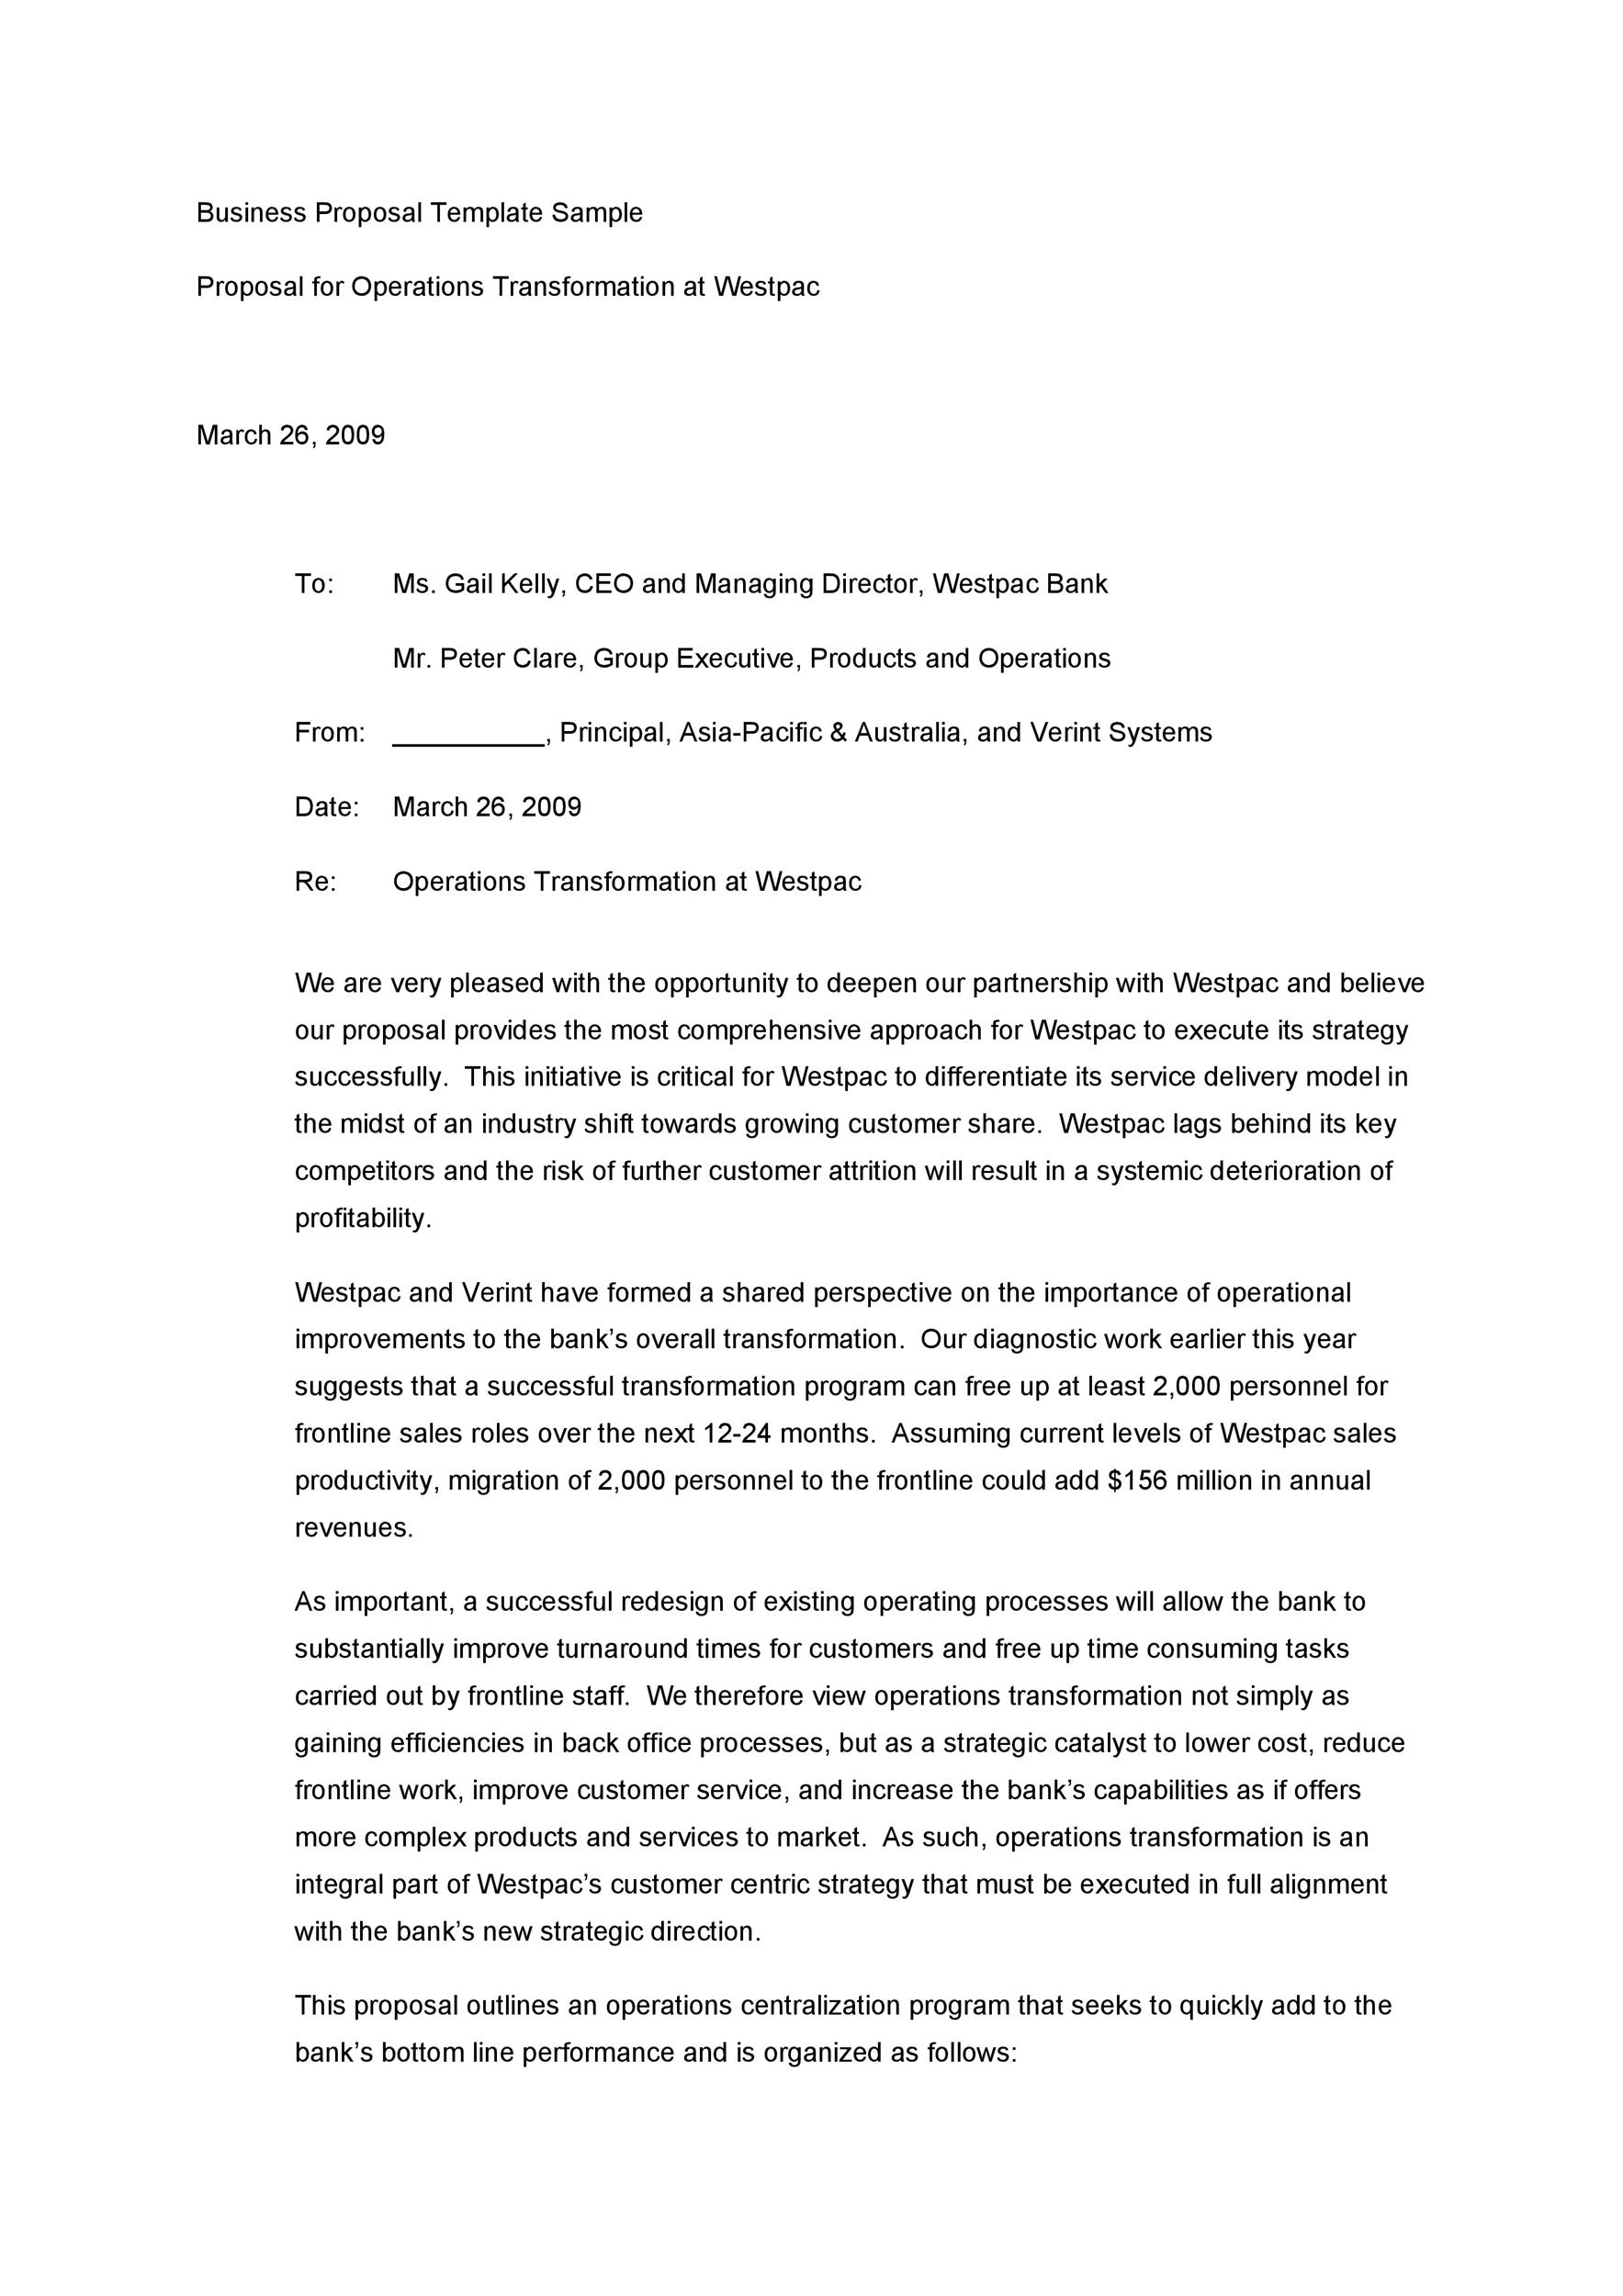 Business Proposal Examples  Business Proposal Letter Format